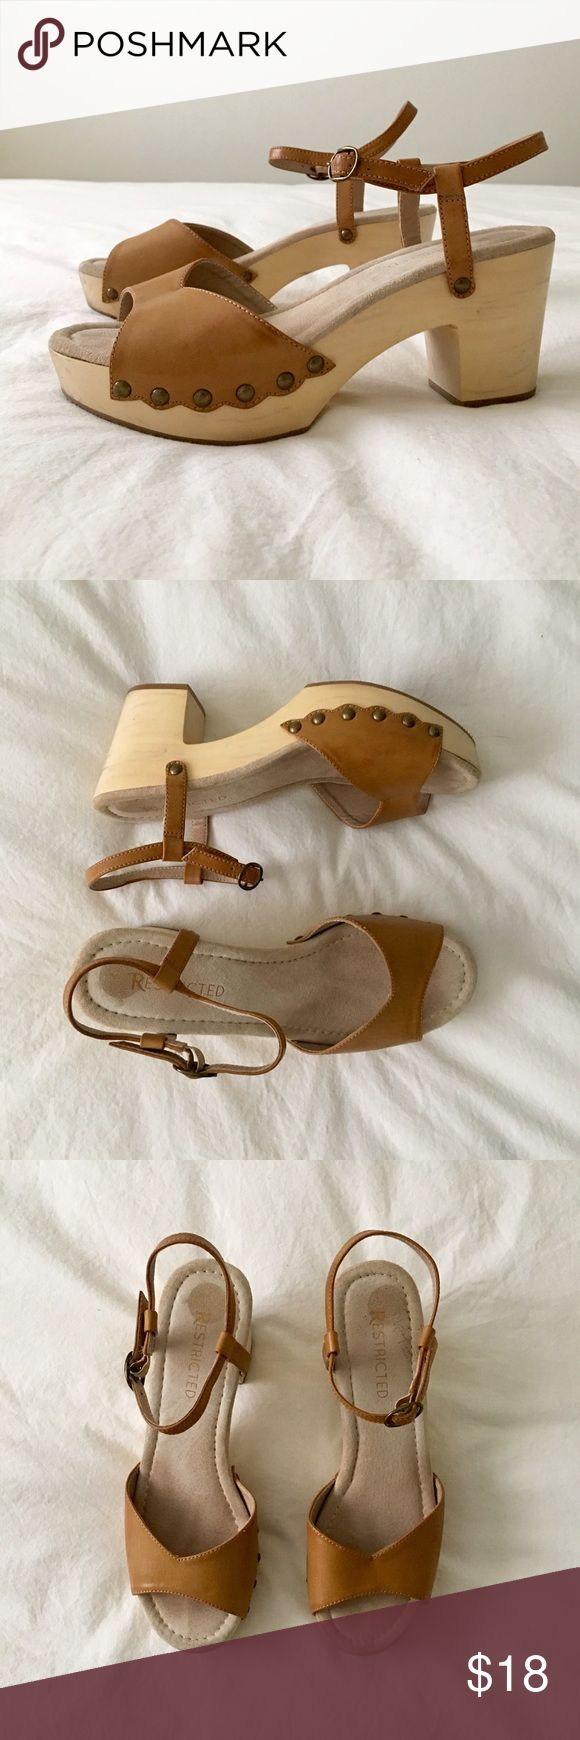 Restricted Clogs Super cute clogs! Vintage vibes. Look great with dresses and jeans. Tan color with wooden heel. Some scuffs on the heals and toes (pictured). Size 8. Restricted Shoes Mules & Clogs